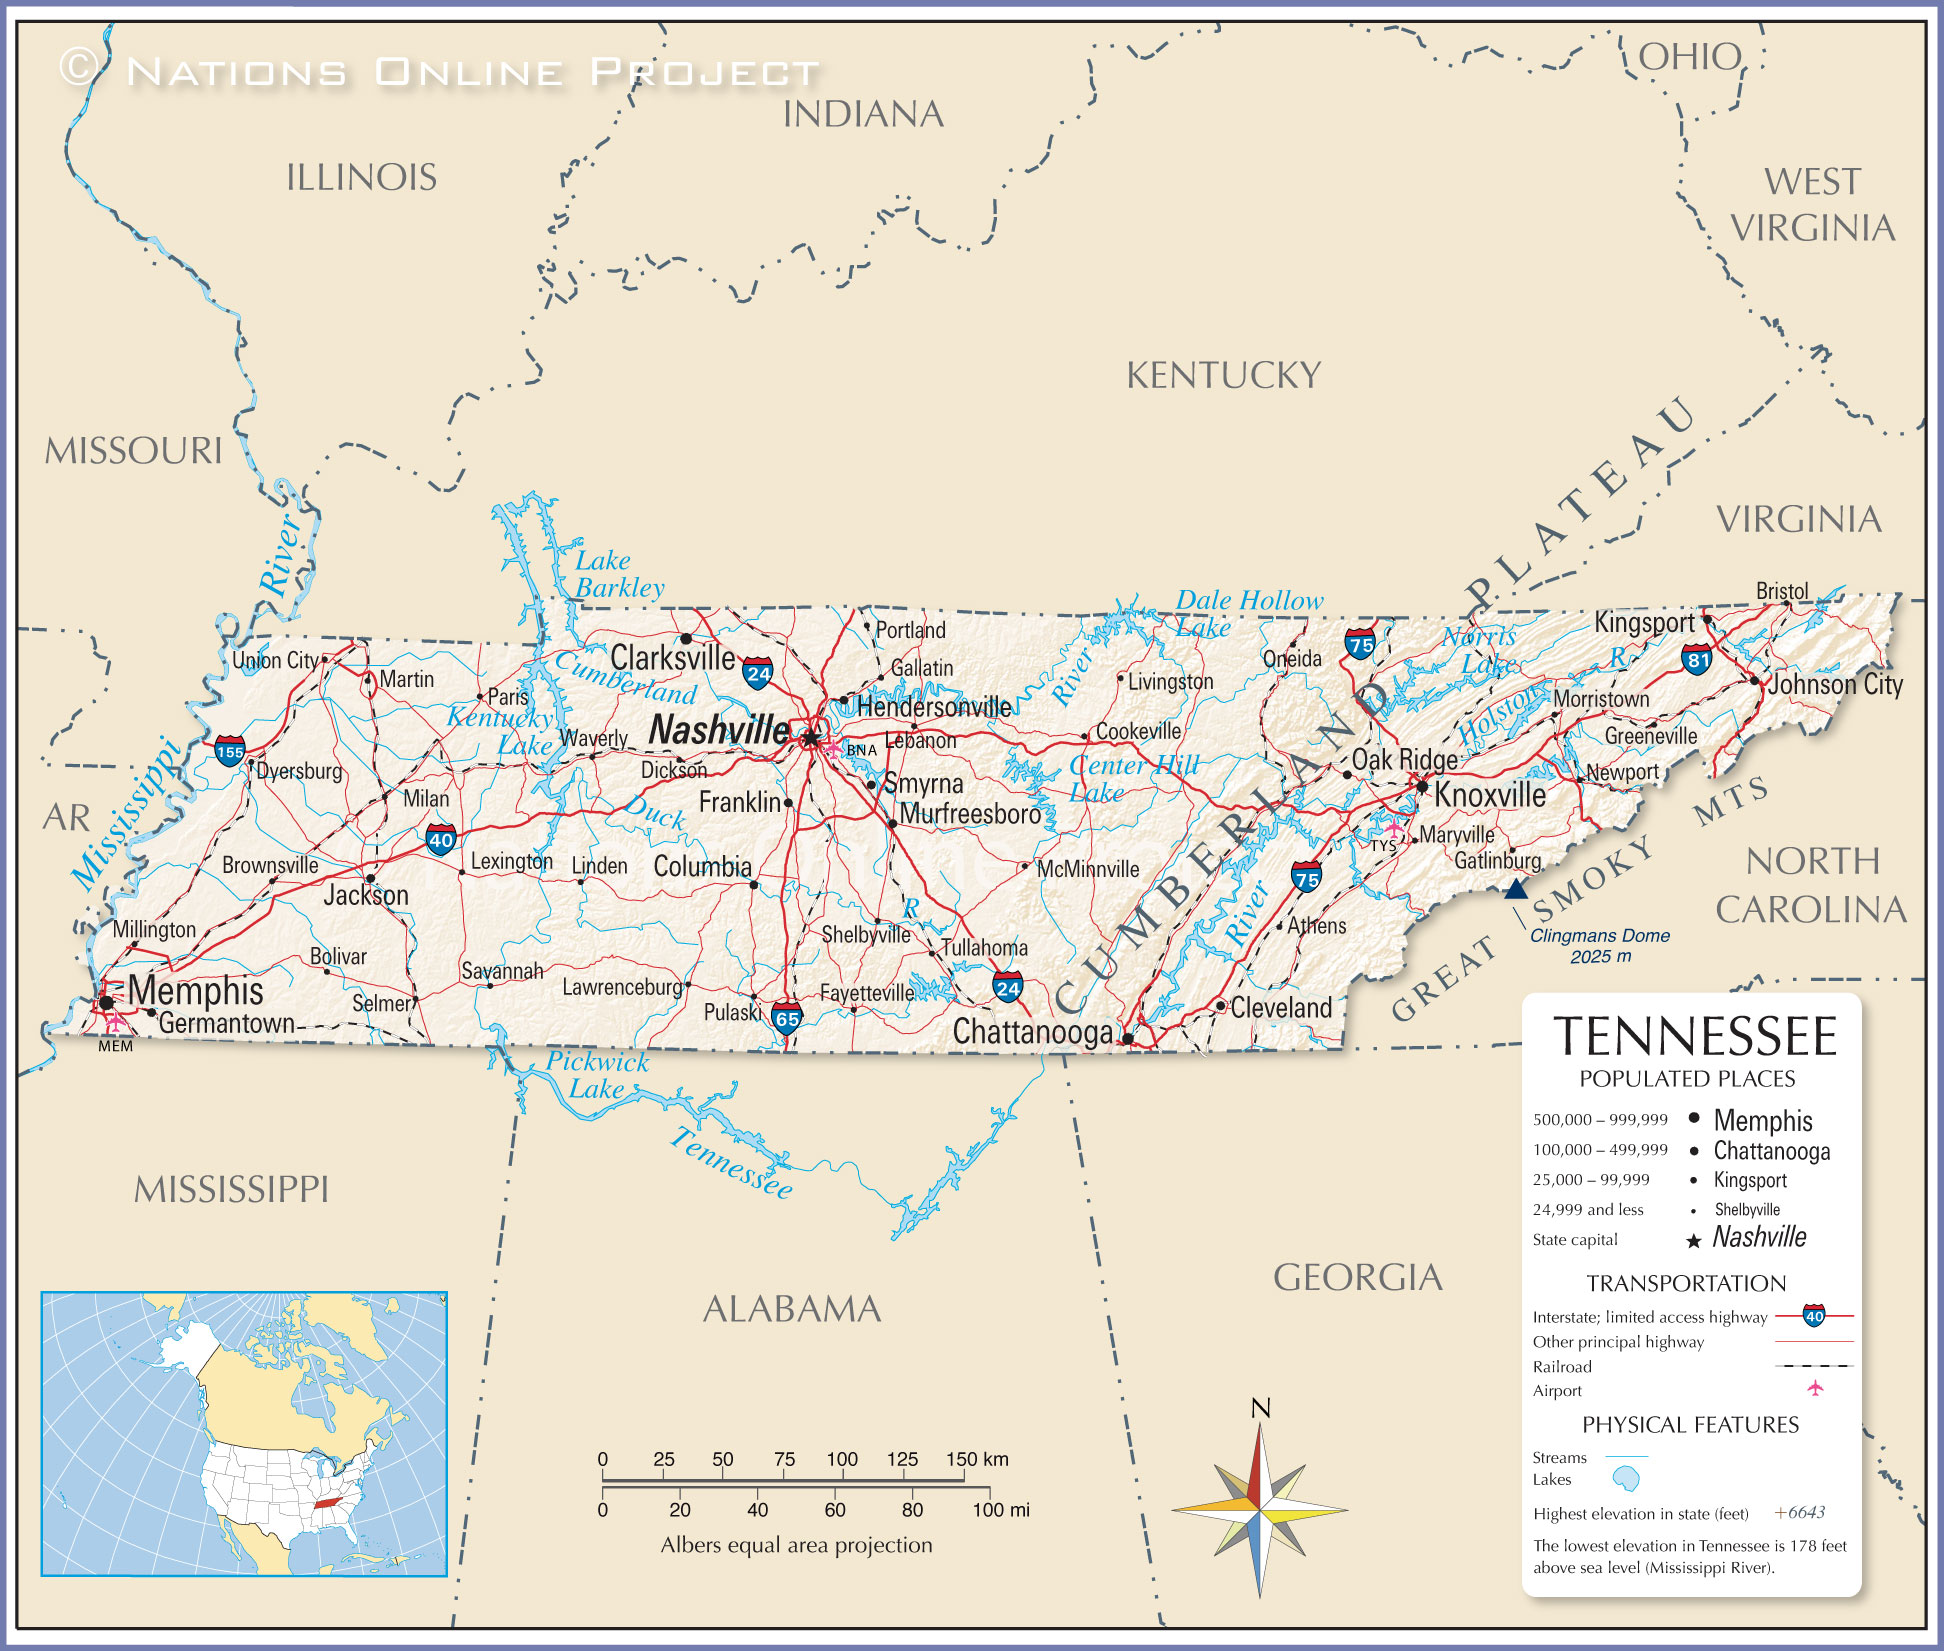 Tn State Map With Cities.Reference Maps Of Tennessee Usa Nations Online Project